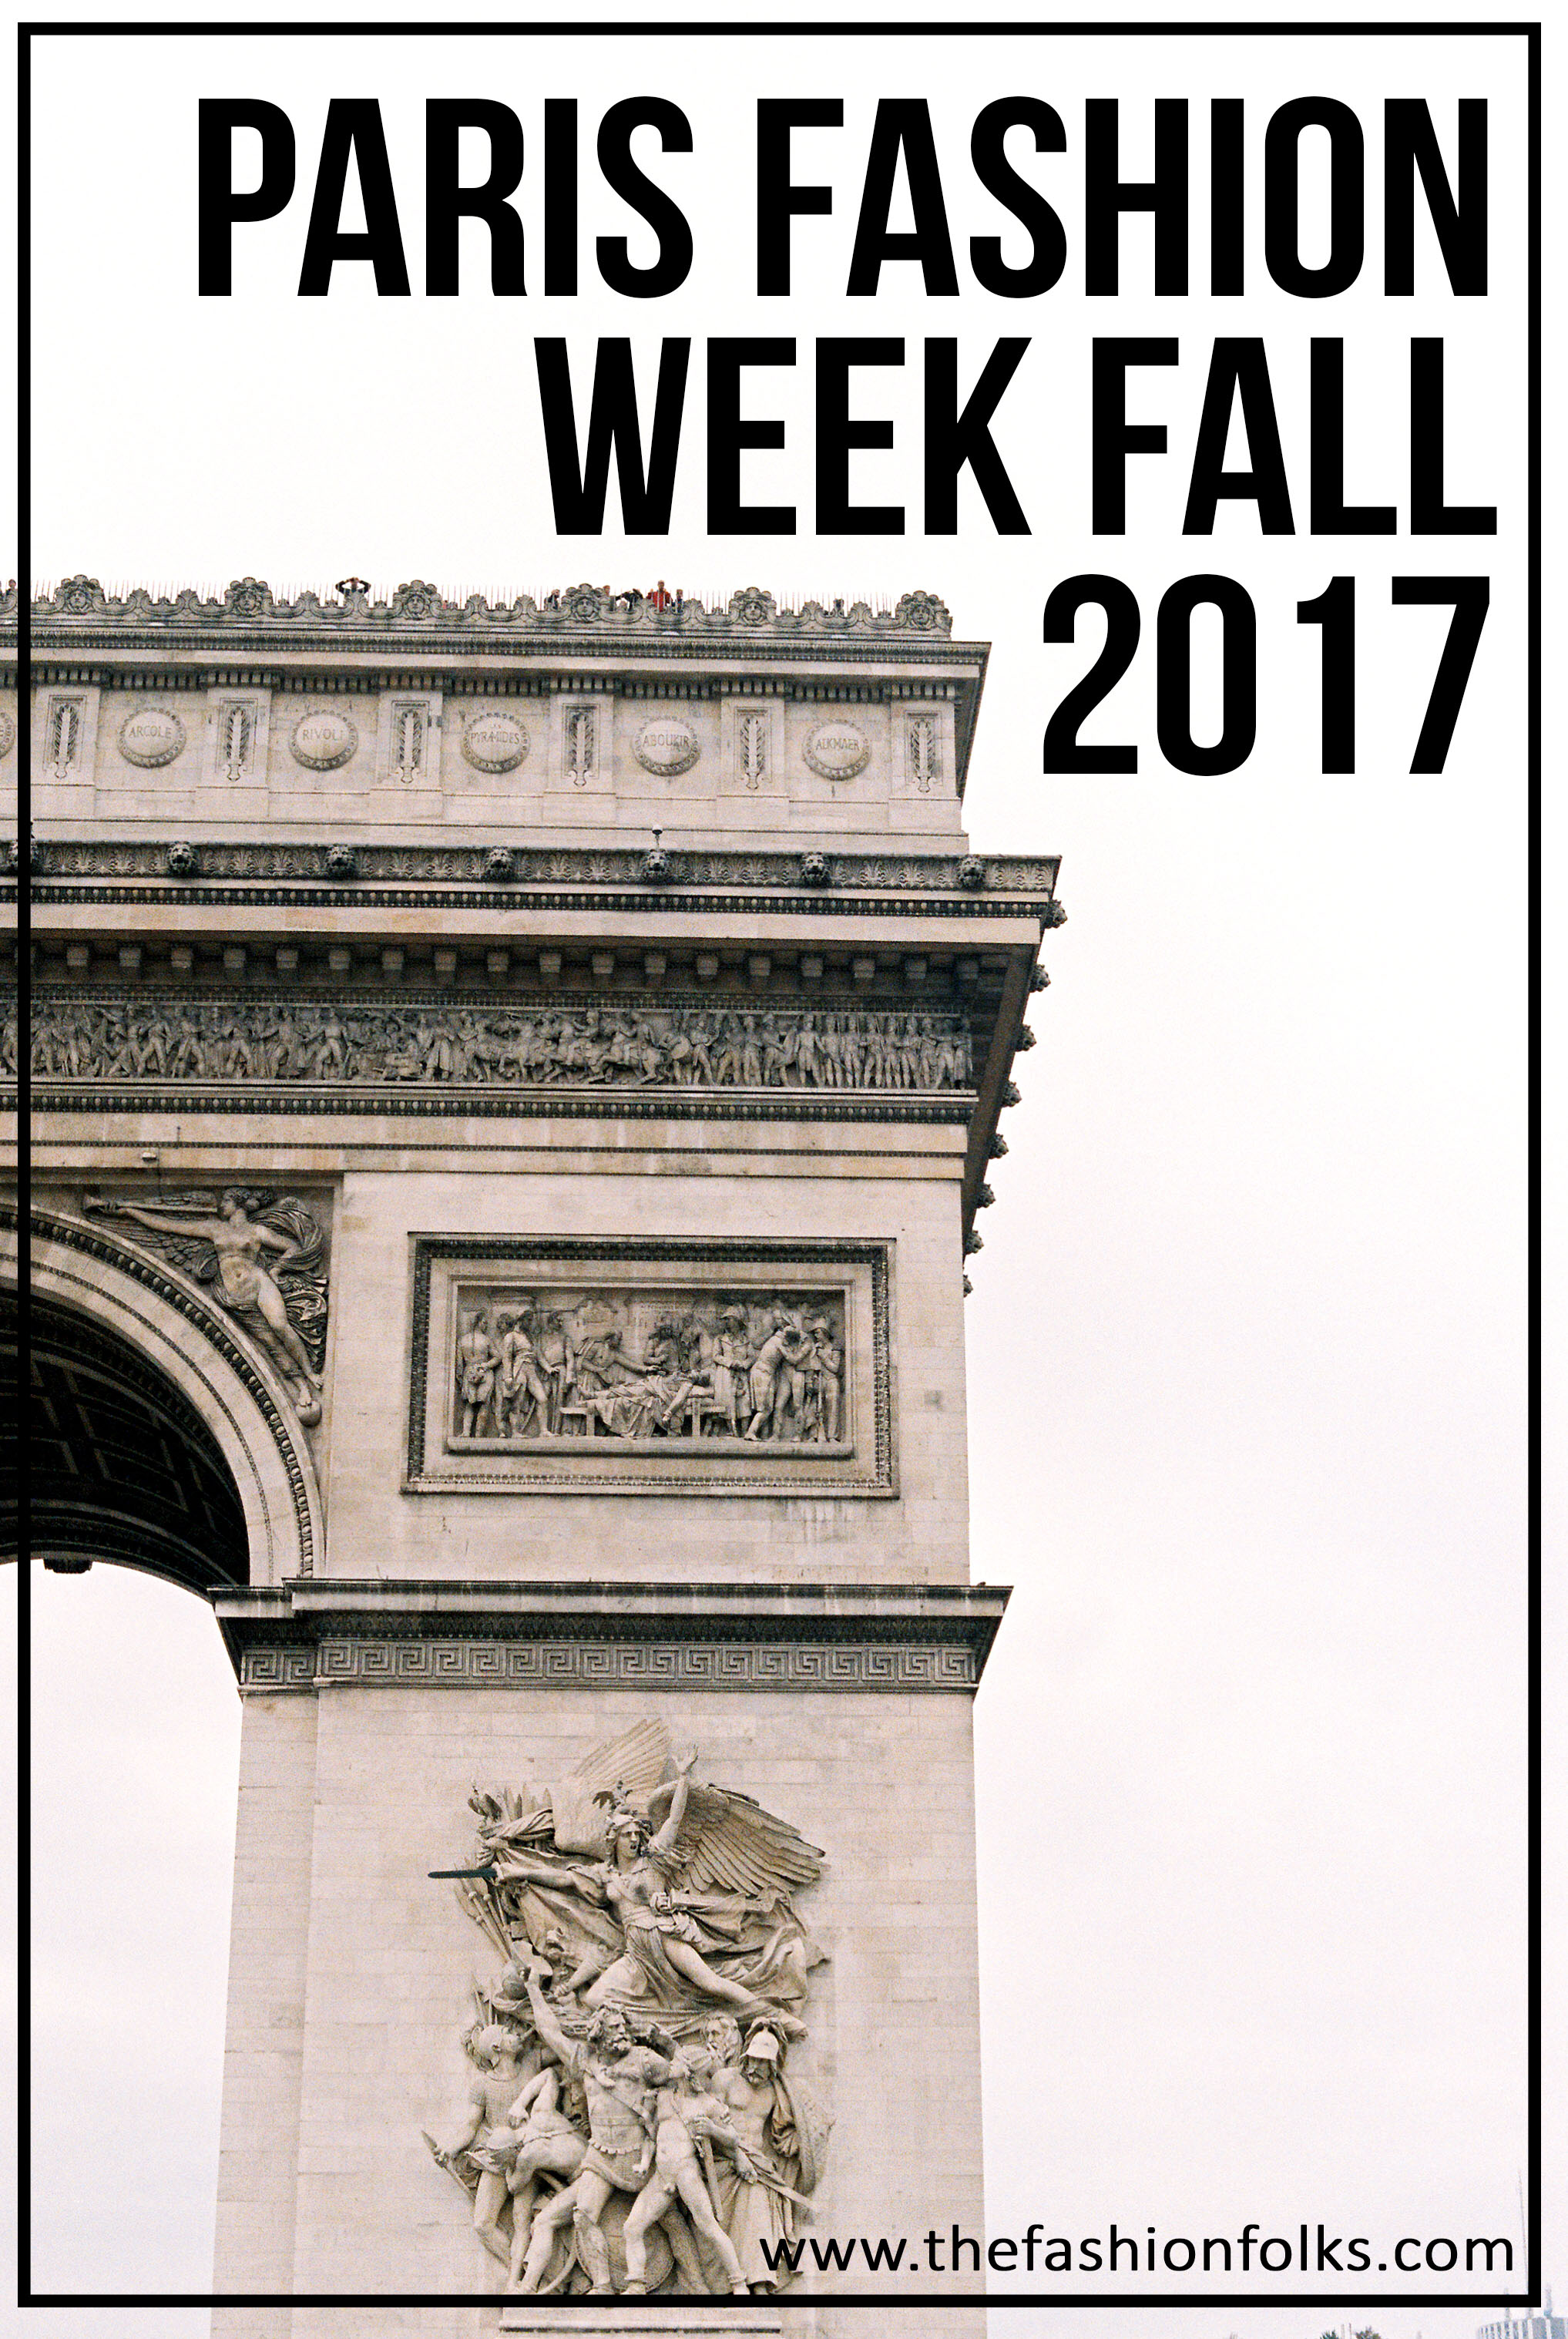 Paris Fashion Week Fall 2017 | The Fashion Folks